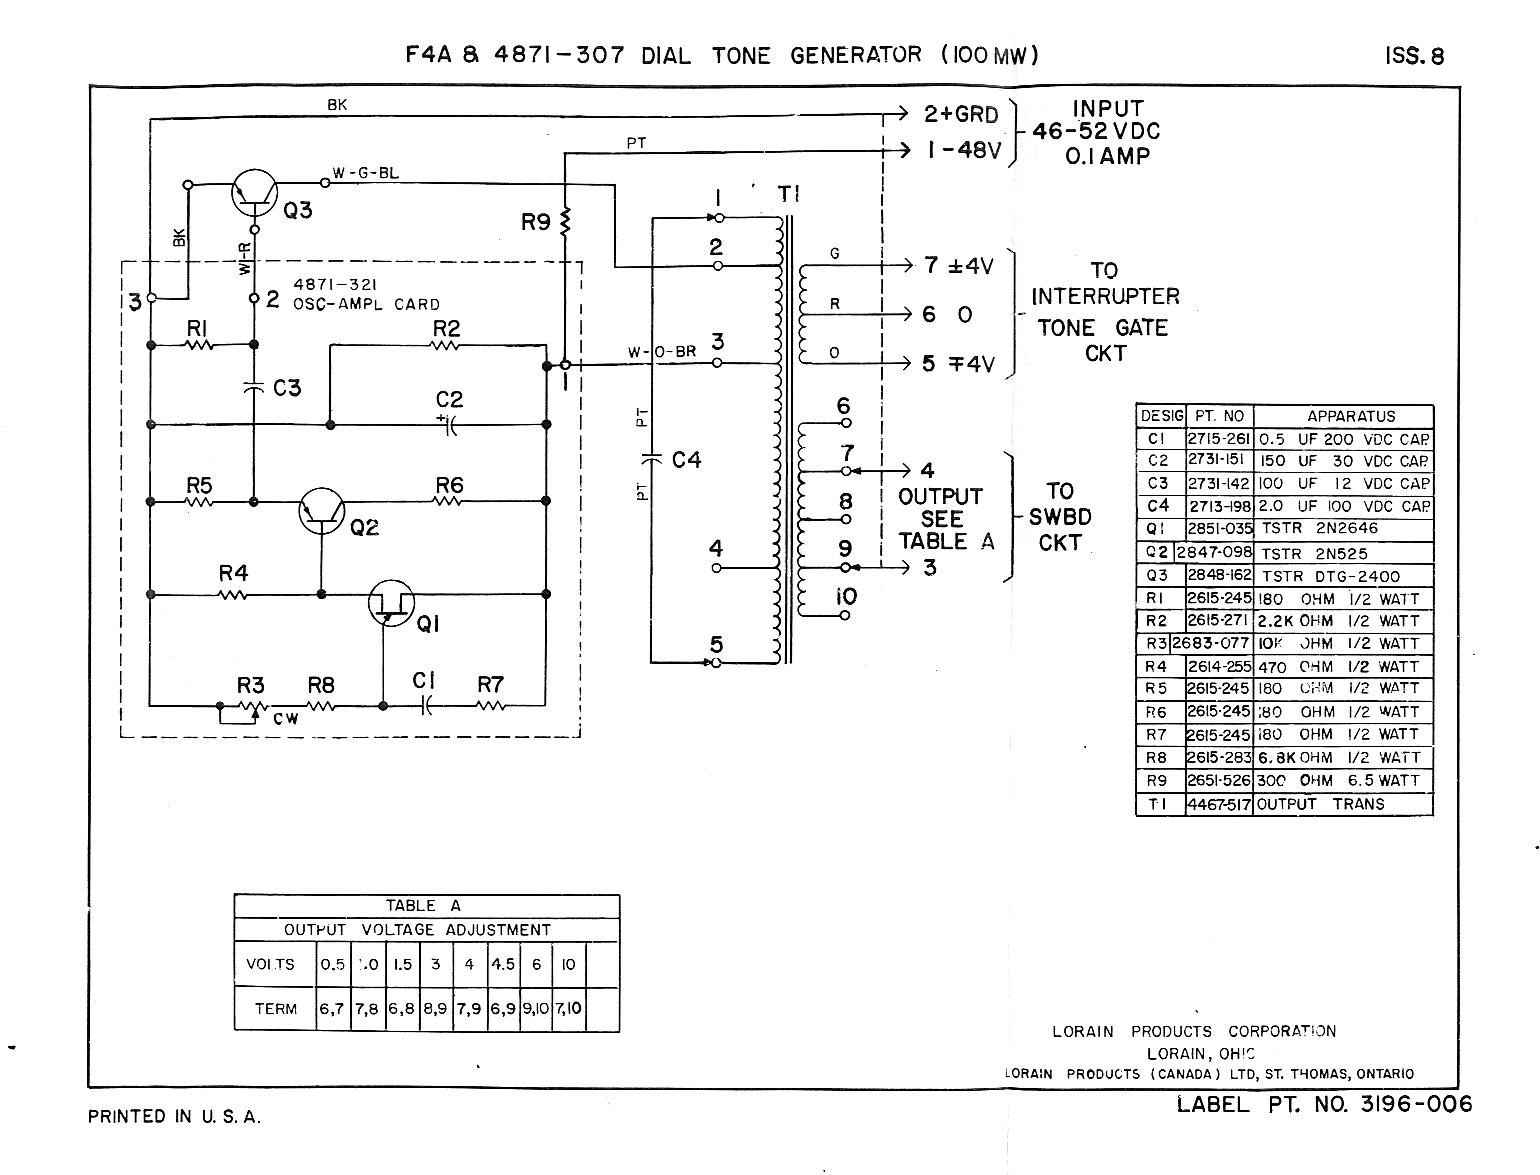 lorain_f4a telephone technical references Residential Telephone Wiring Diagram at soozxer.org